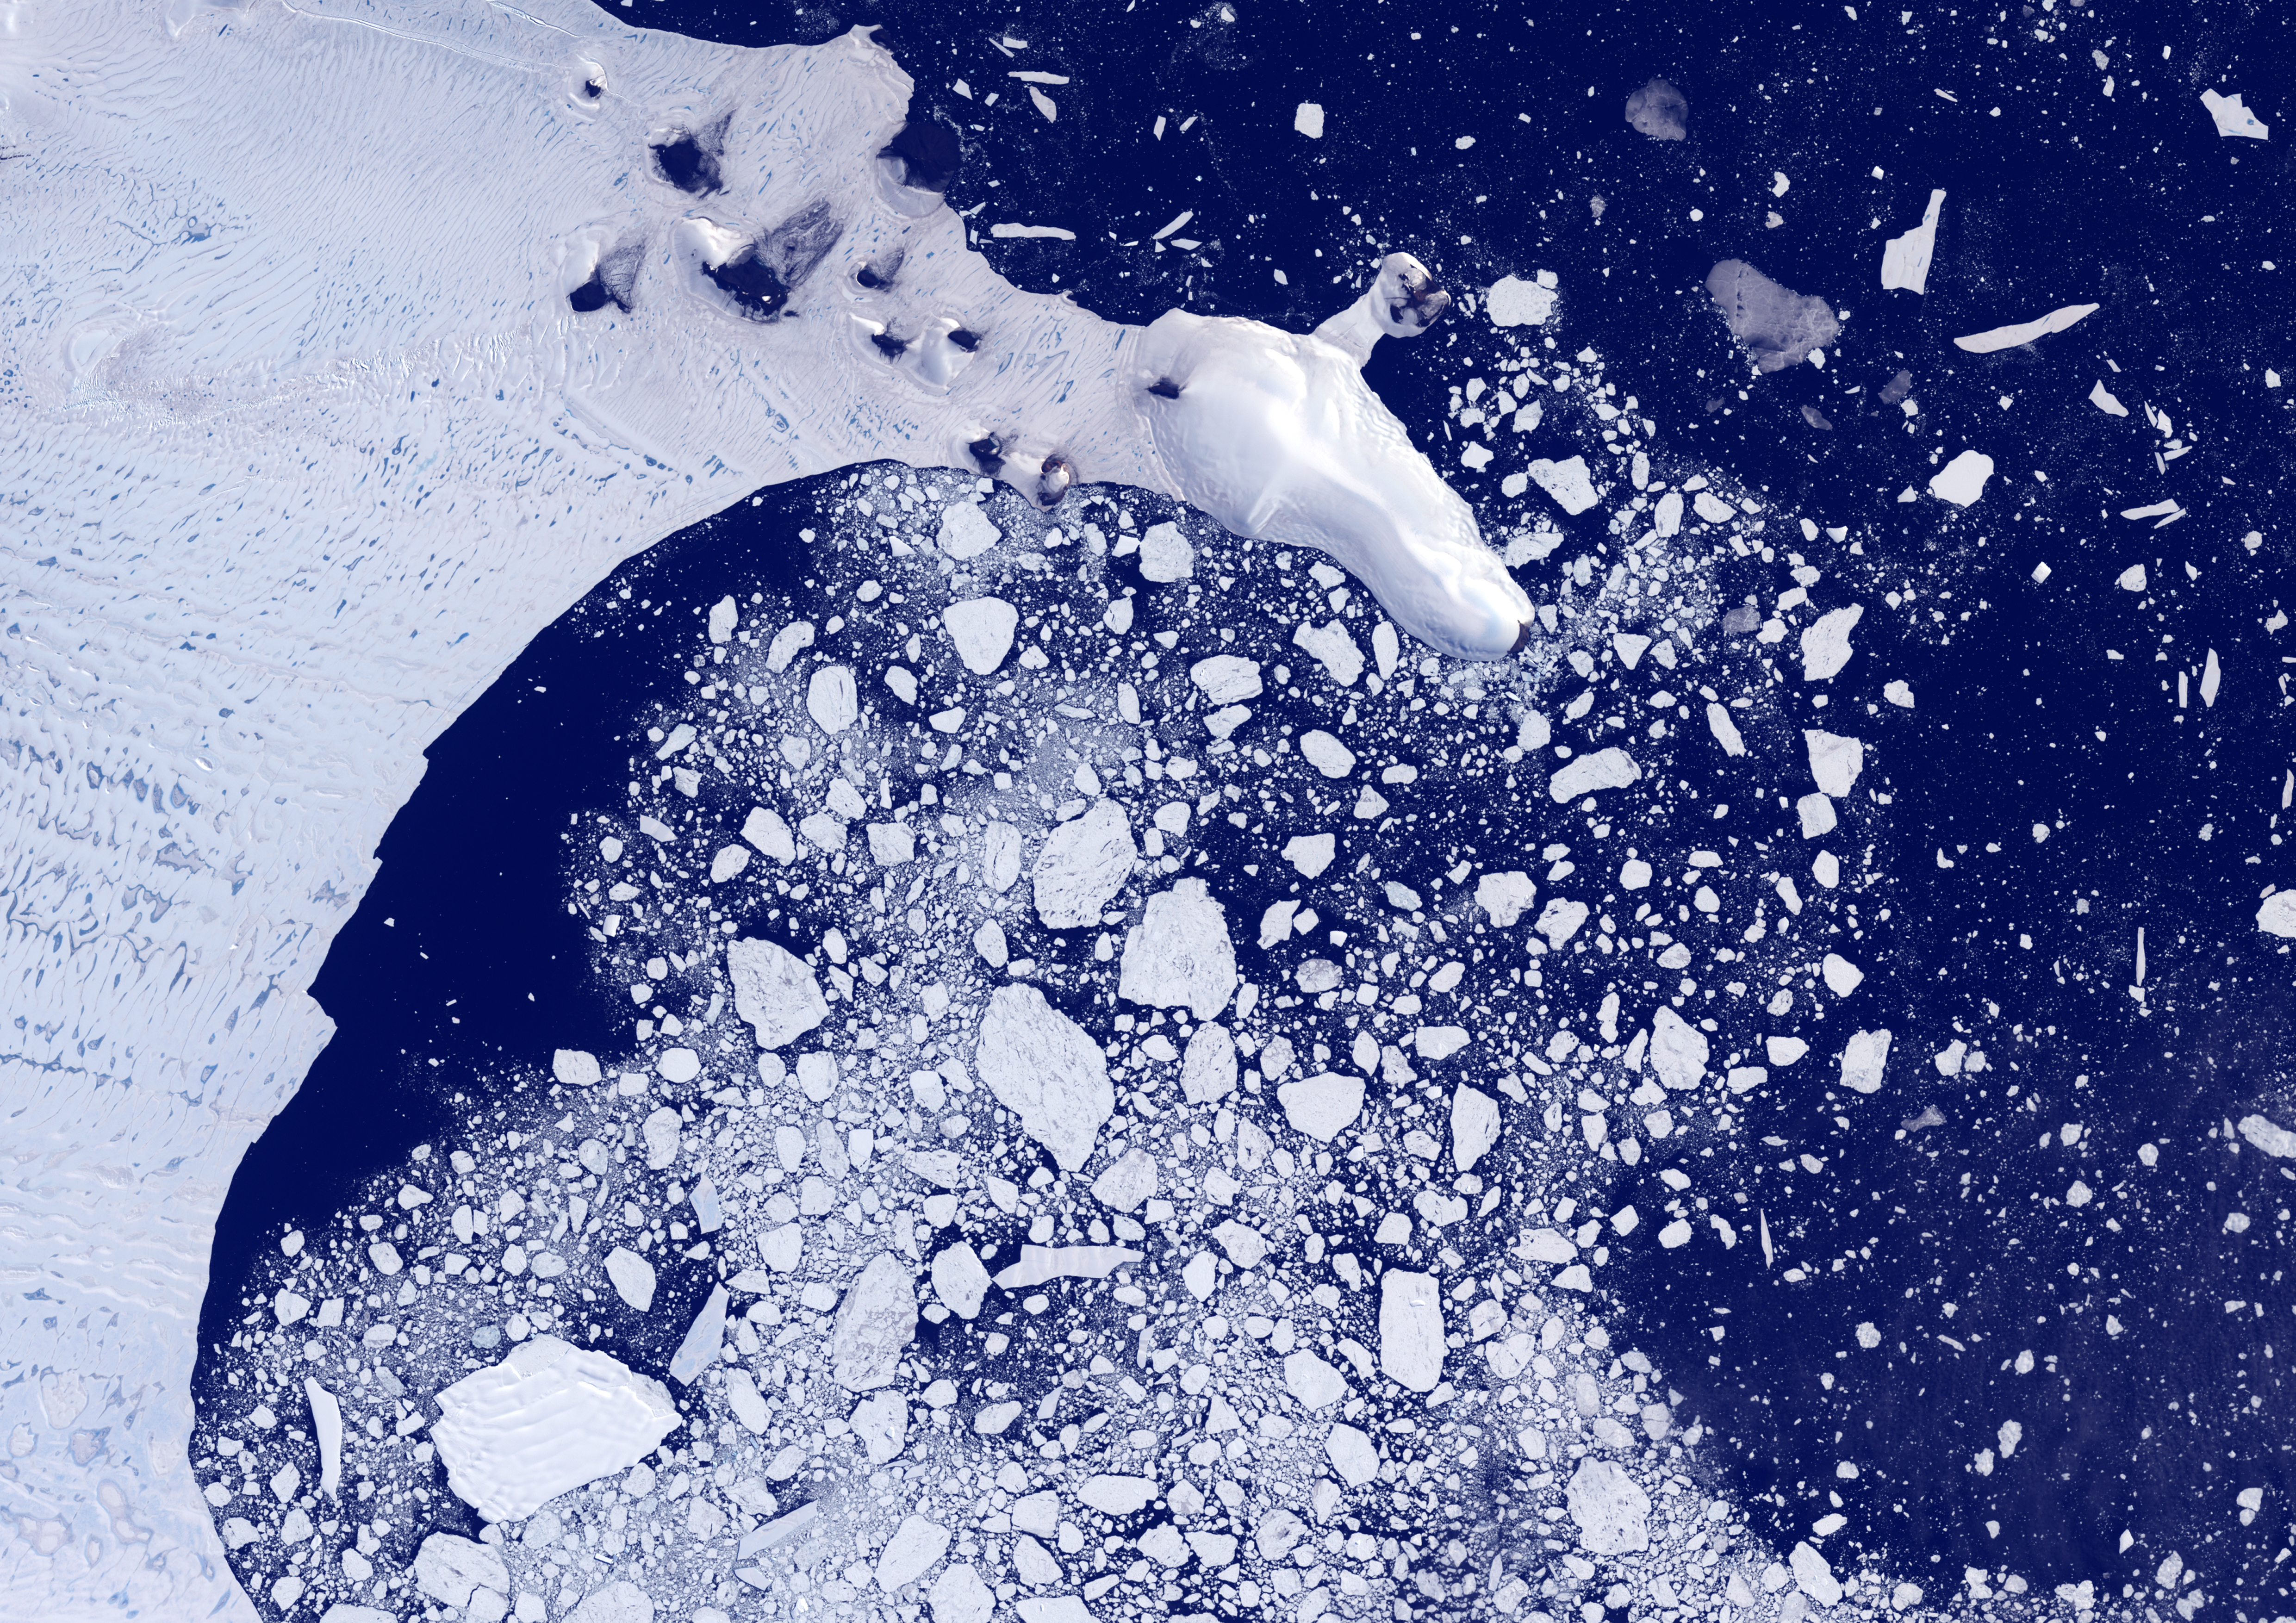 Weddel Sea, Antarctica, true colour satellite image. Pack ice melting in spring time in the Weddel Sea, East of the Antarctica peninsula. Image taken on 21 February 2000 using LANDSAT data., Weddell Sea, Antarctica, True Colour Satellite Image (Photo by Planet Observer/Universal Images Group via Getty Images)